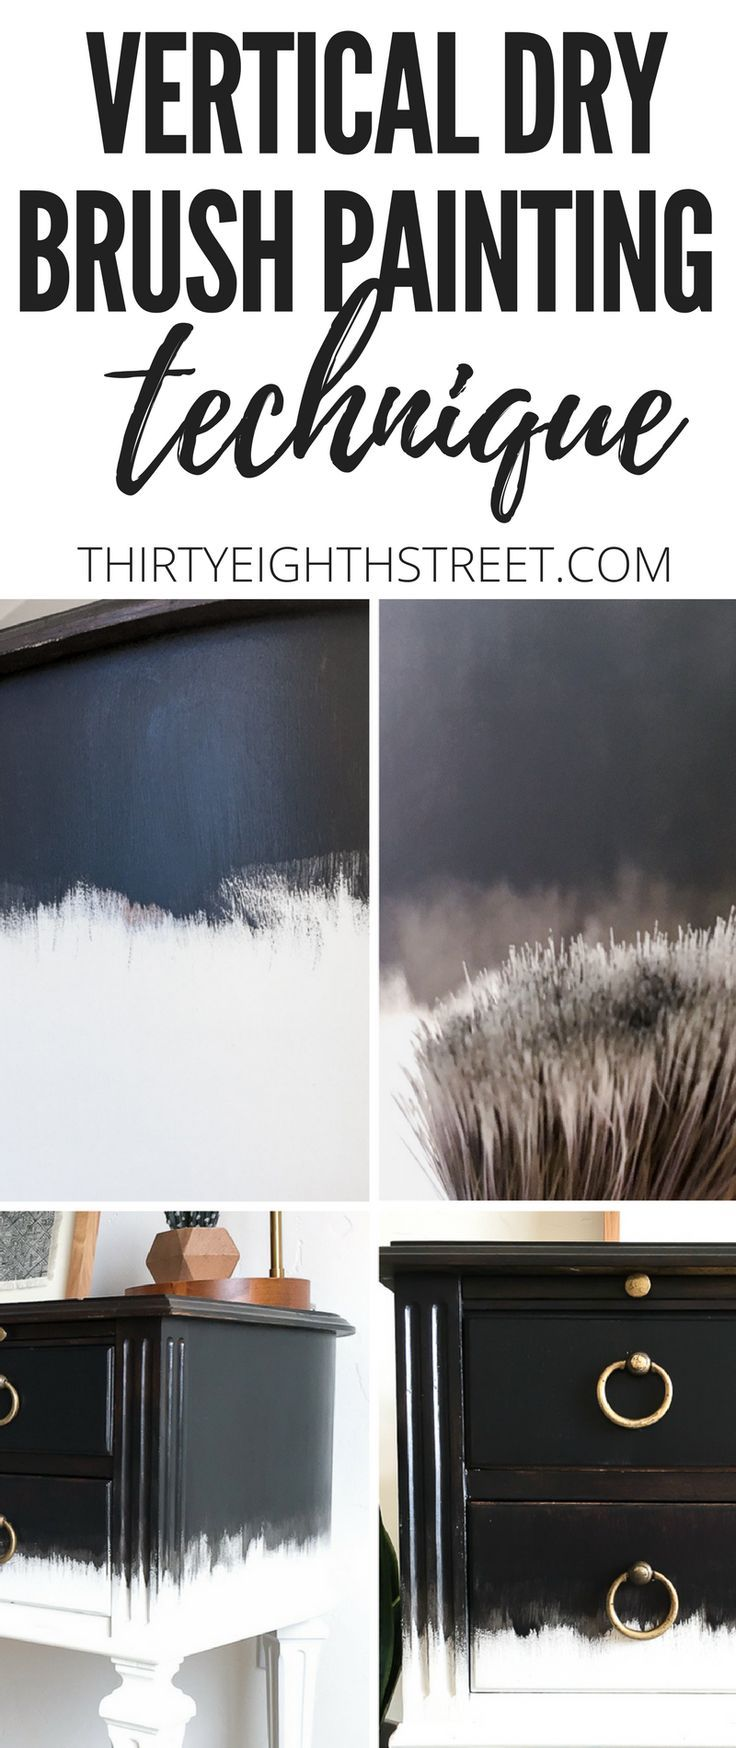 Learn How To Turn Your Furniture Into Art With This Vertical Dry Brush Painting ...